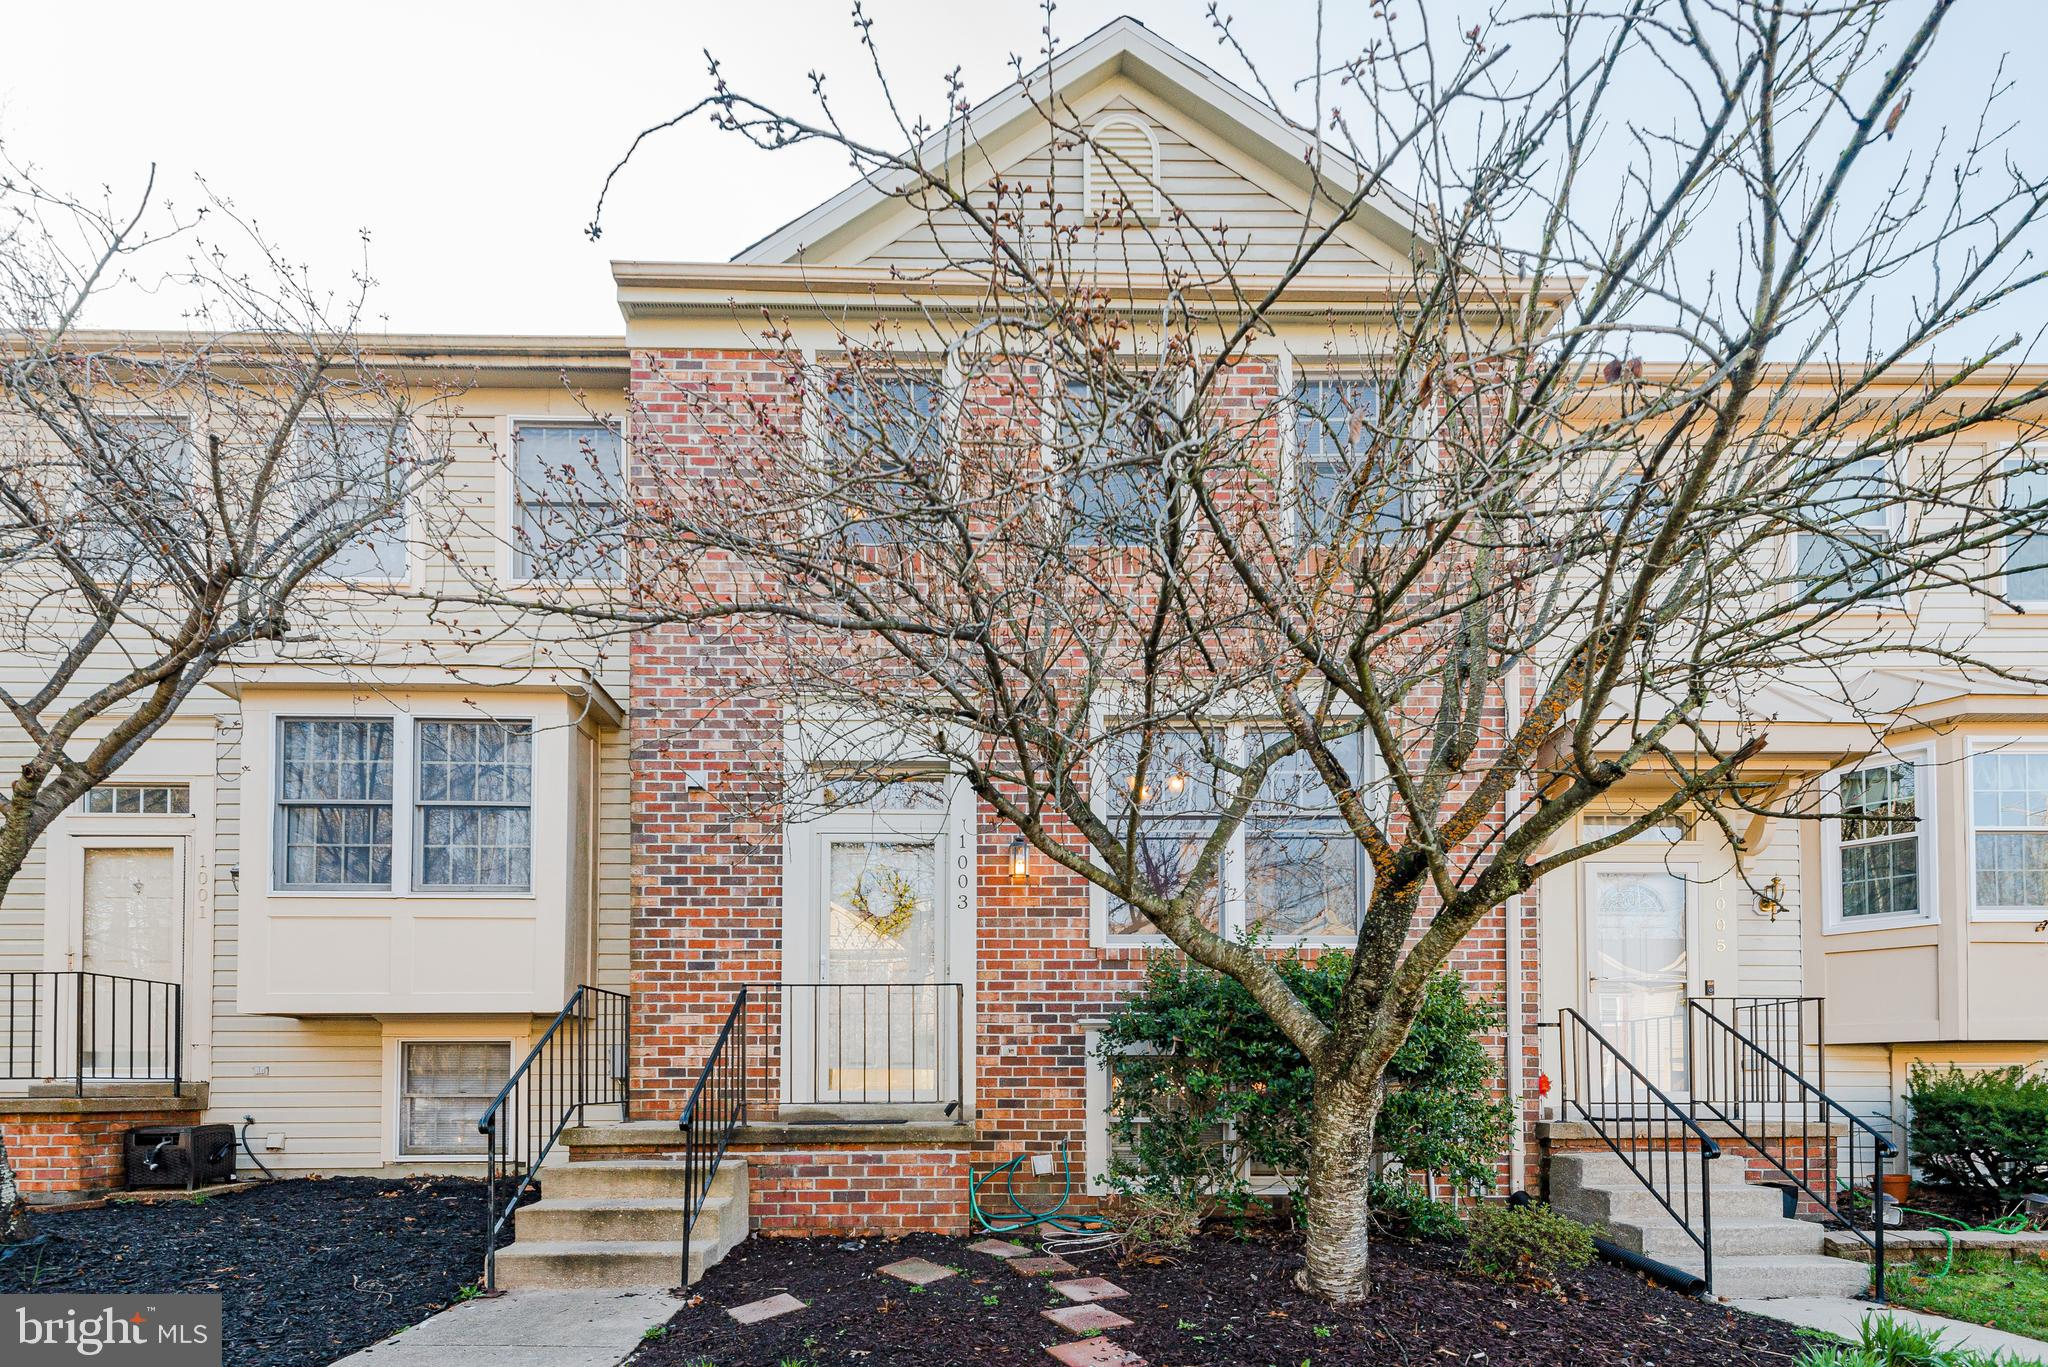 1003 CHESTNUT HAVEN COURT, CHESTNUT HILL COVE, MD 21226